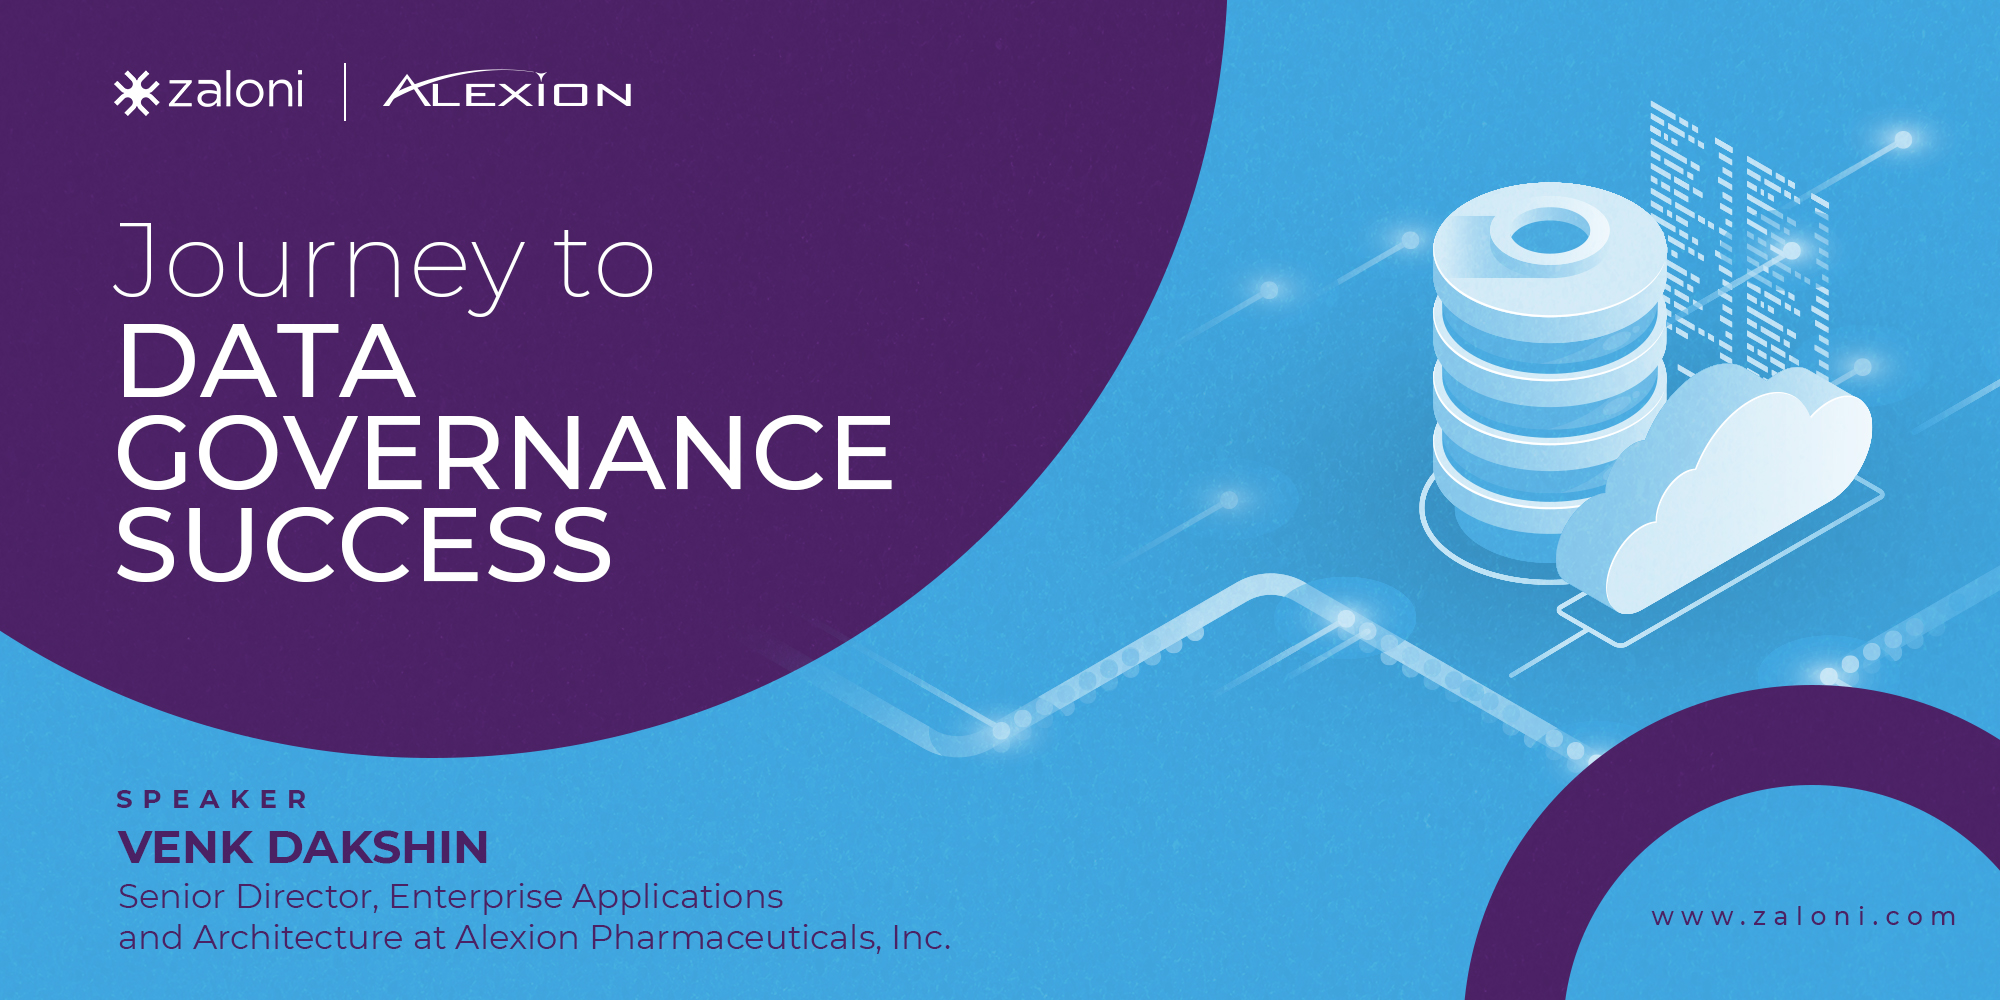 Data Governance Best Practices with Alexion Pharmaceuticals